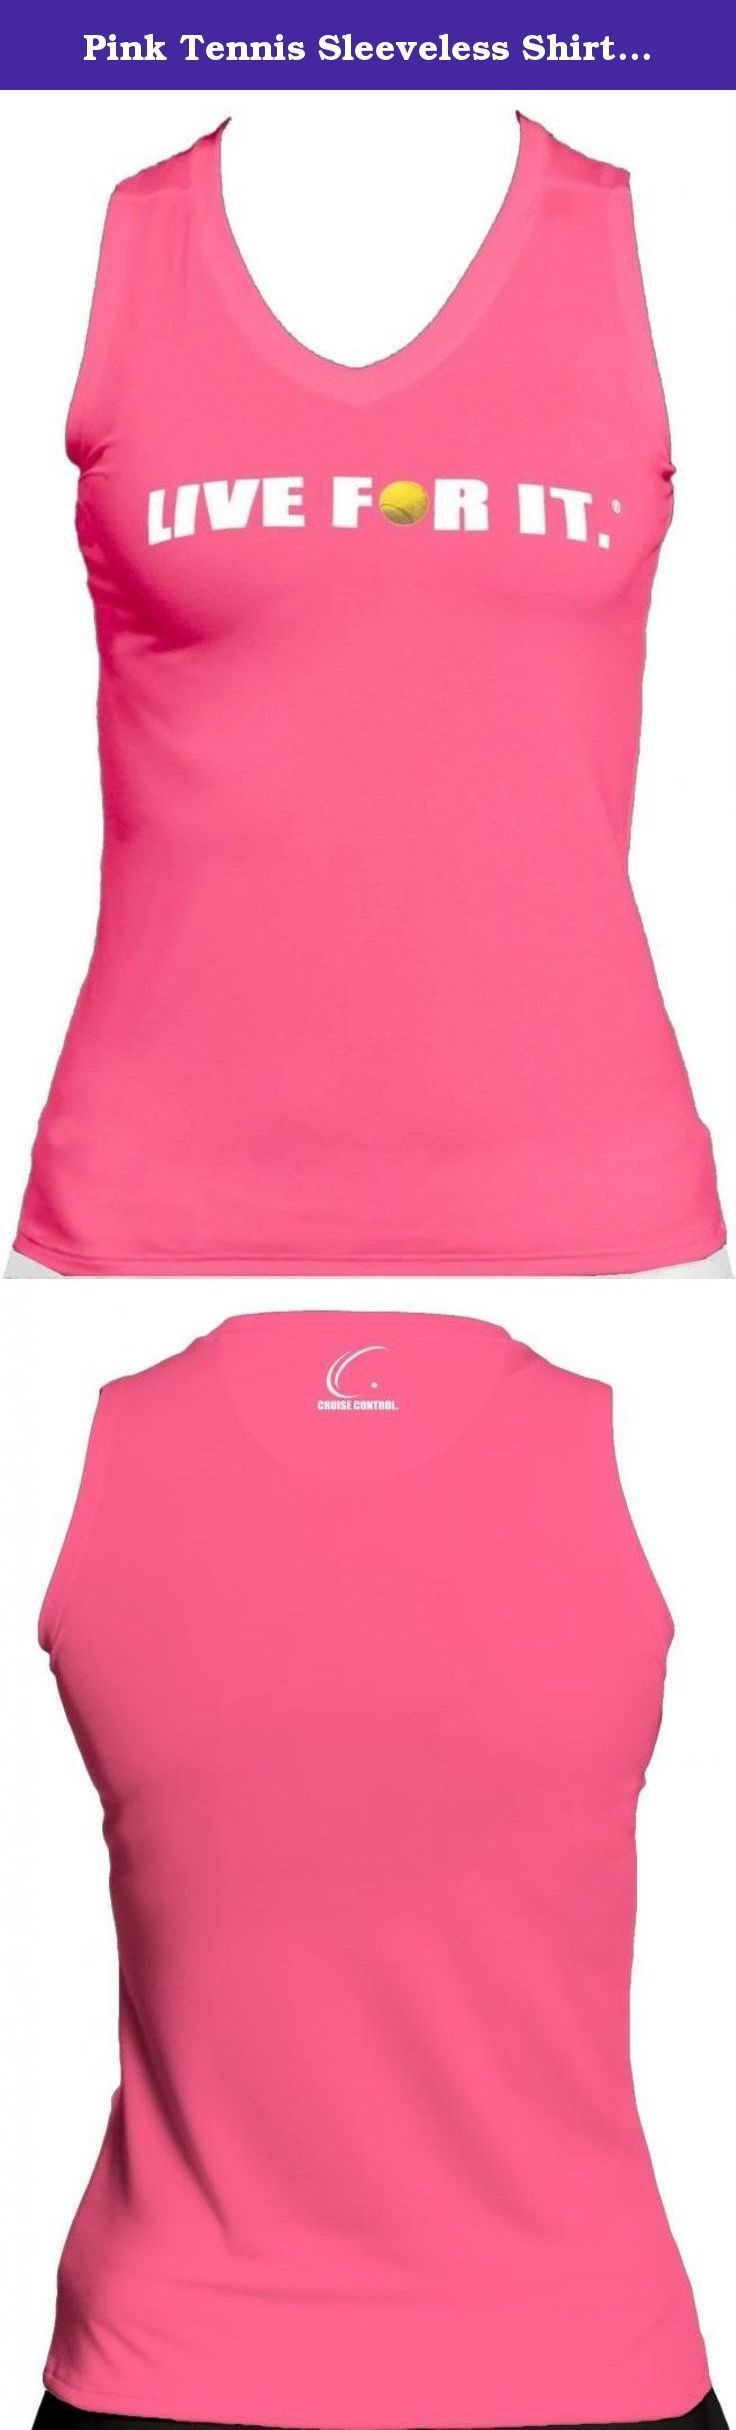 Pink Tennis Sleeveless Shirt Live For It Athletic Performance, Cruise Control, Size X-SMALL. Cruise Control's comfortable LIVE FOR IT.® tennis performance tee is designed with a contoured fit to compliment your every curve. This soft antibacterial and moisture management fitted tee is made with moisture wicking technology that absorbs the moisture and perspiration from the skin and transports it quickly through the fabric for fast evaporation. The material's antibacterial characteristics…